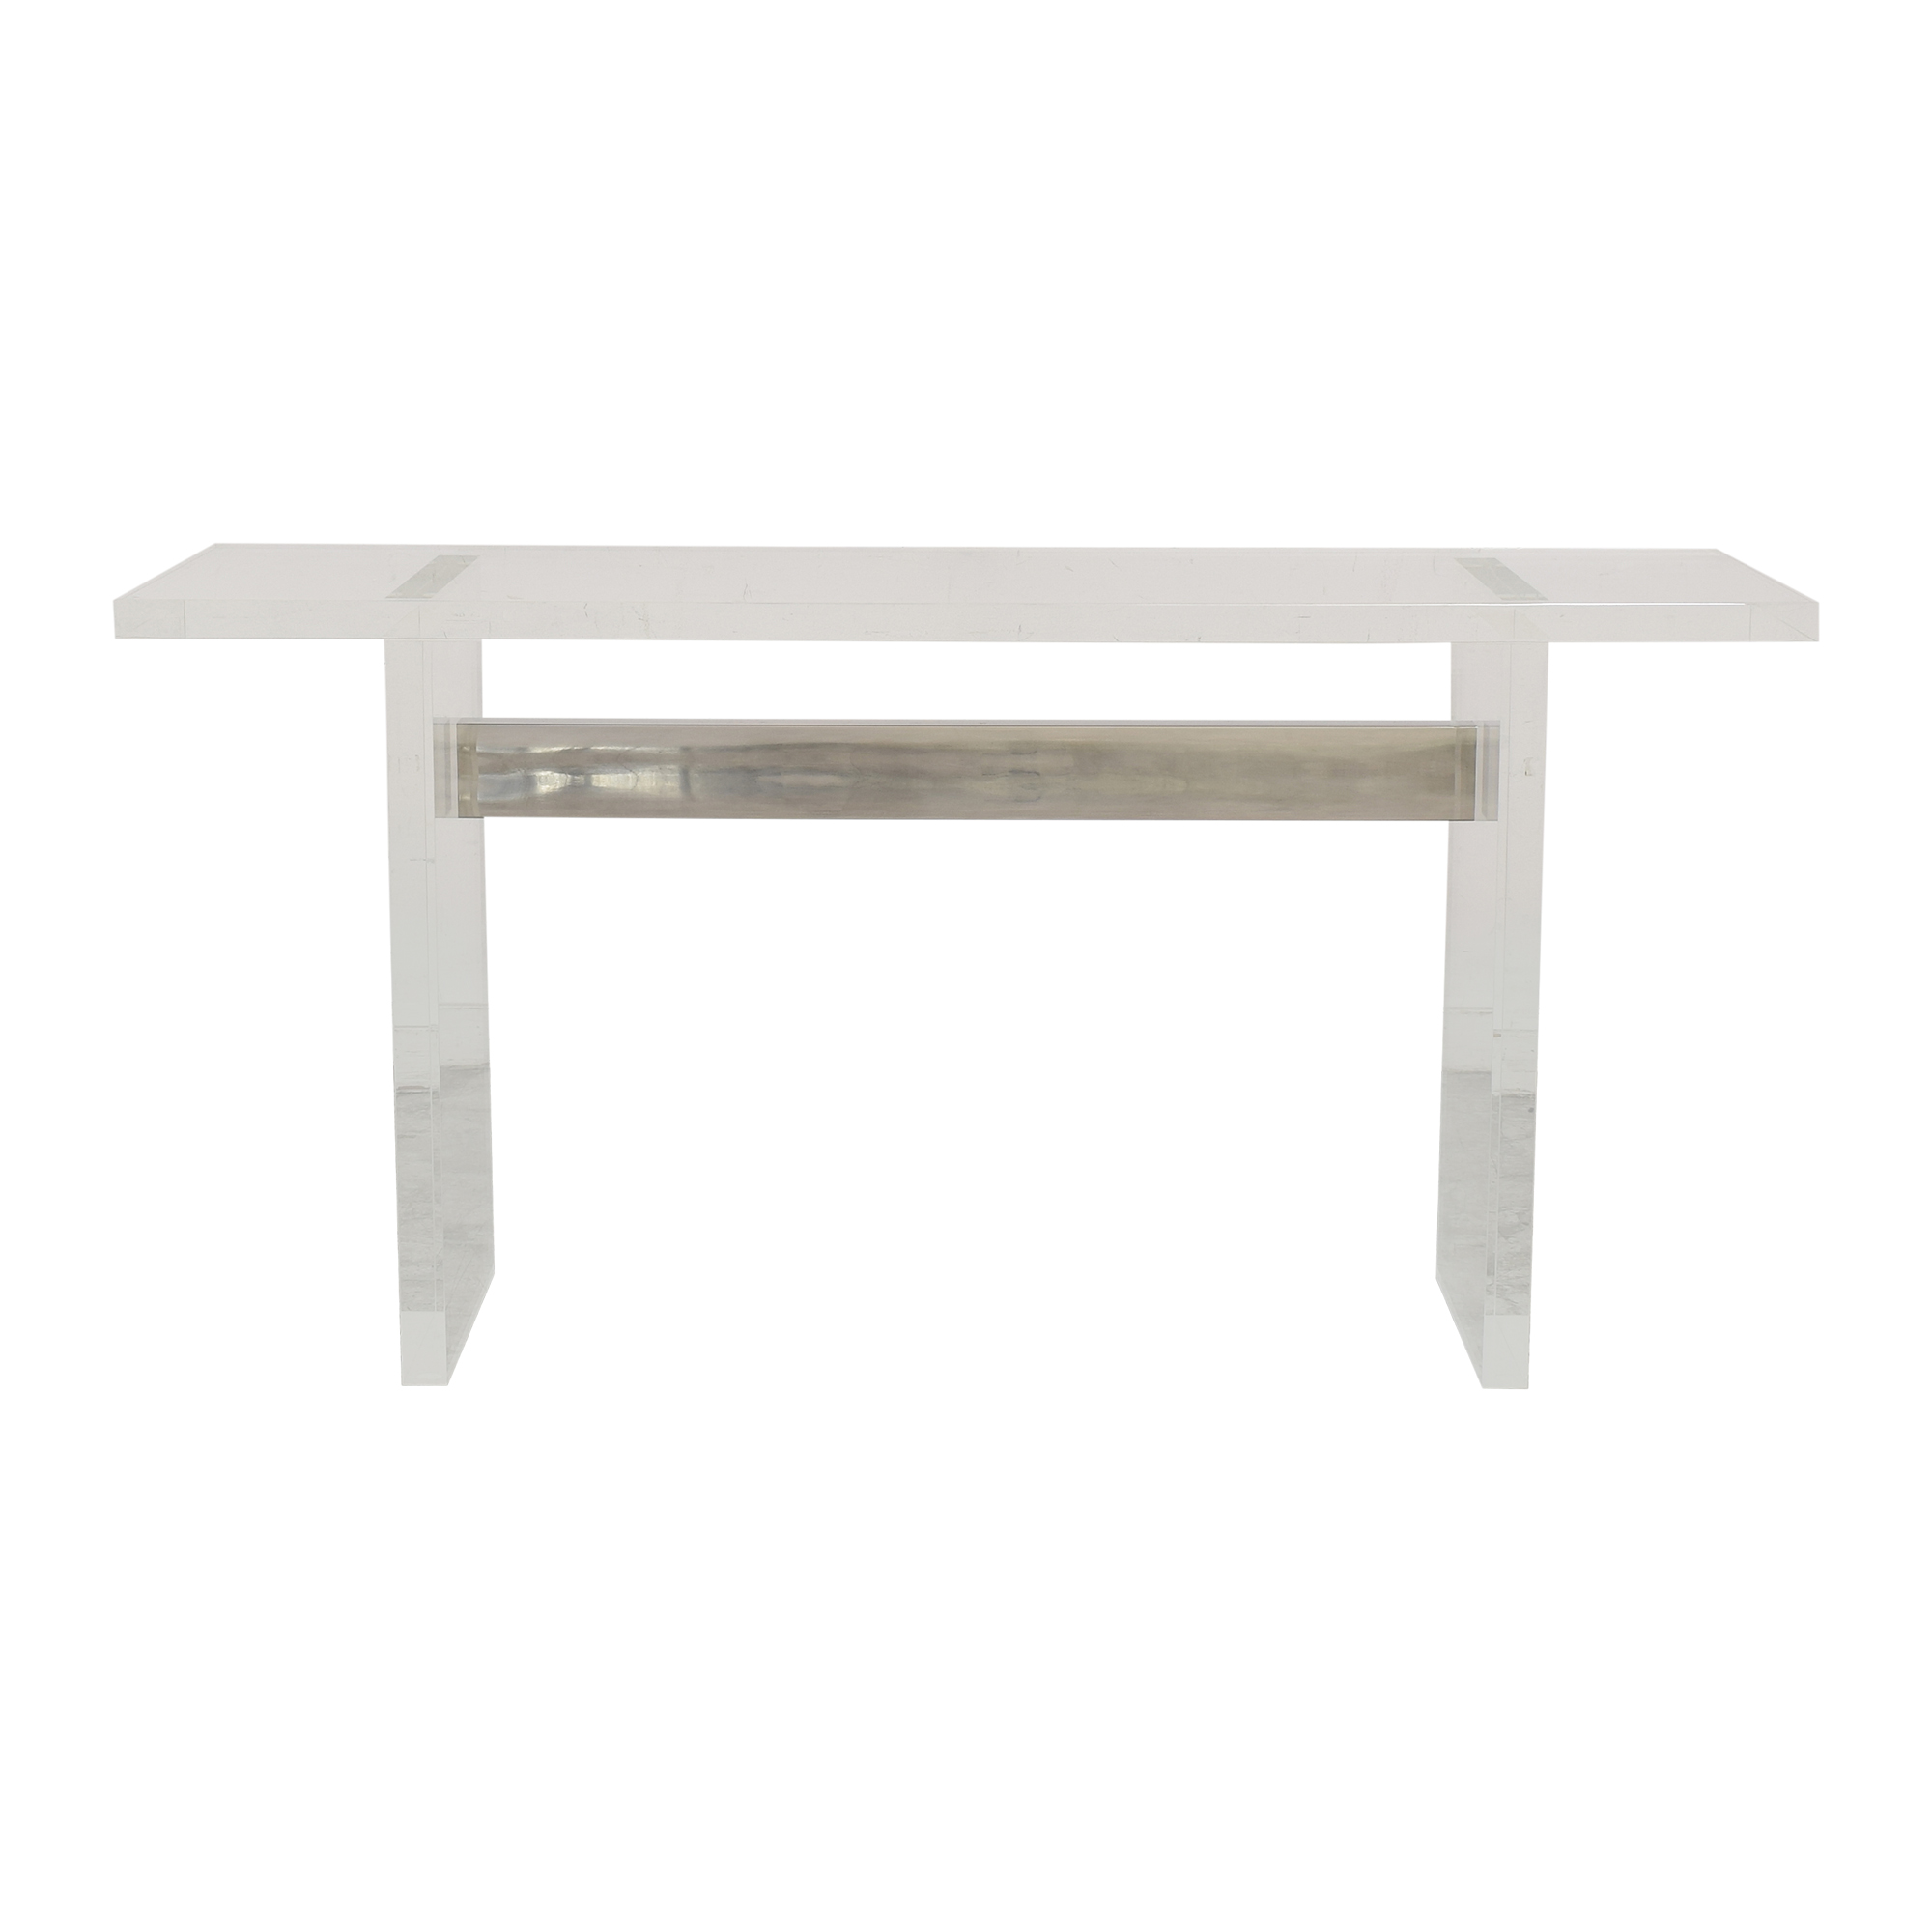 shop Williams Sonoma Williams Sonoma Soho Console online